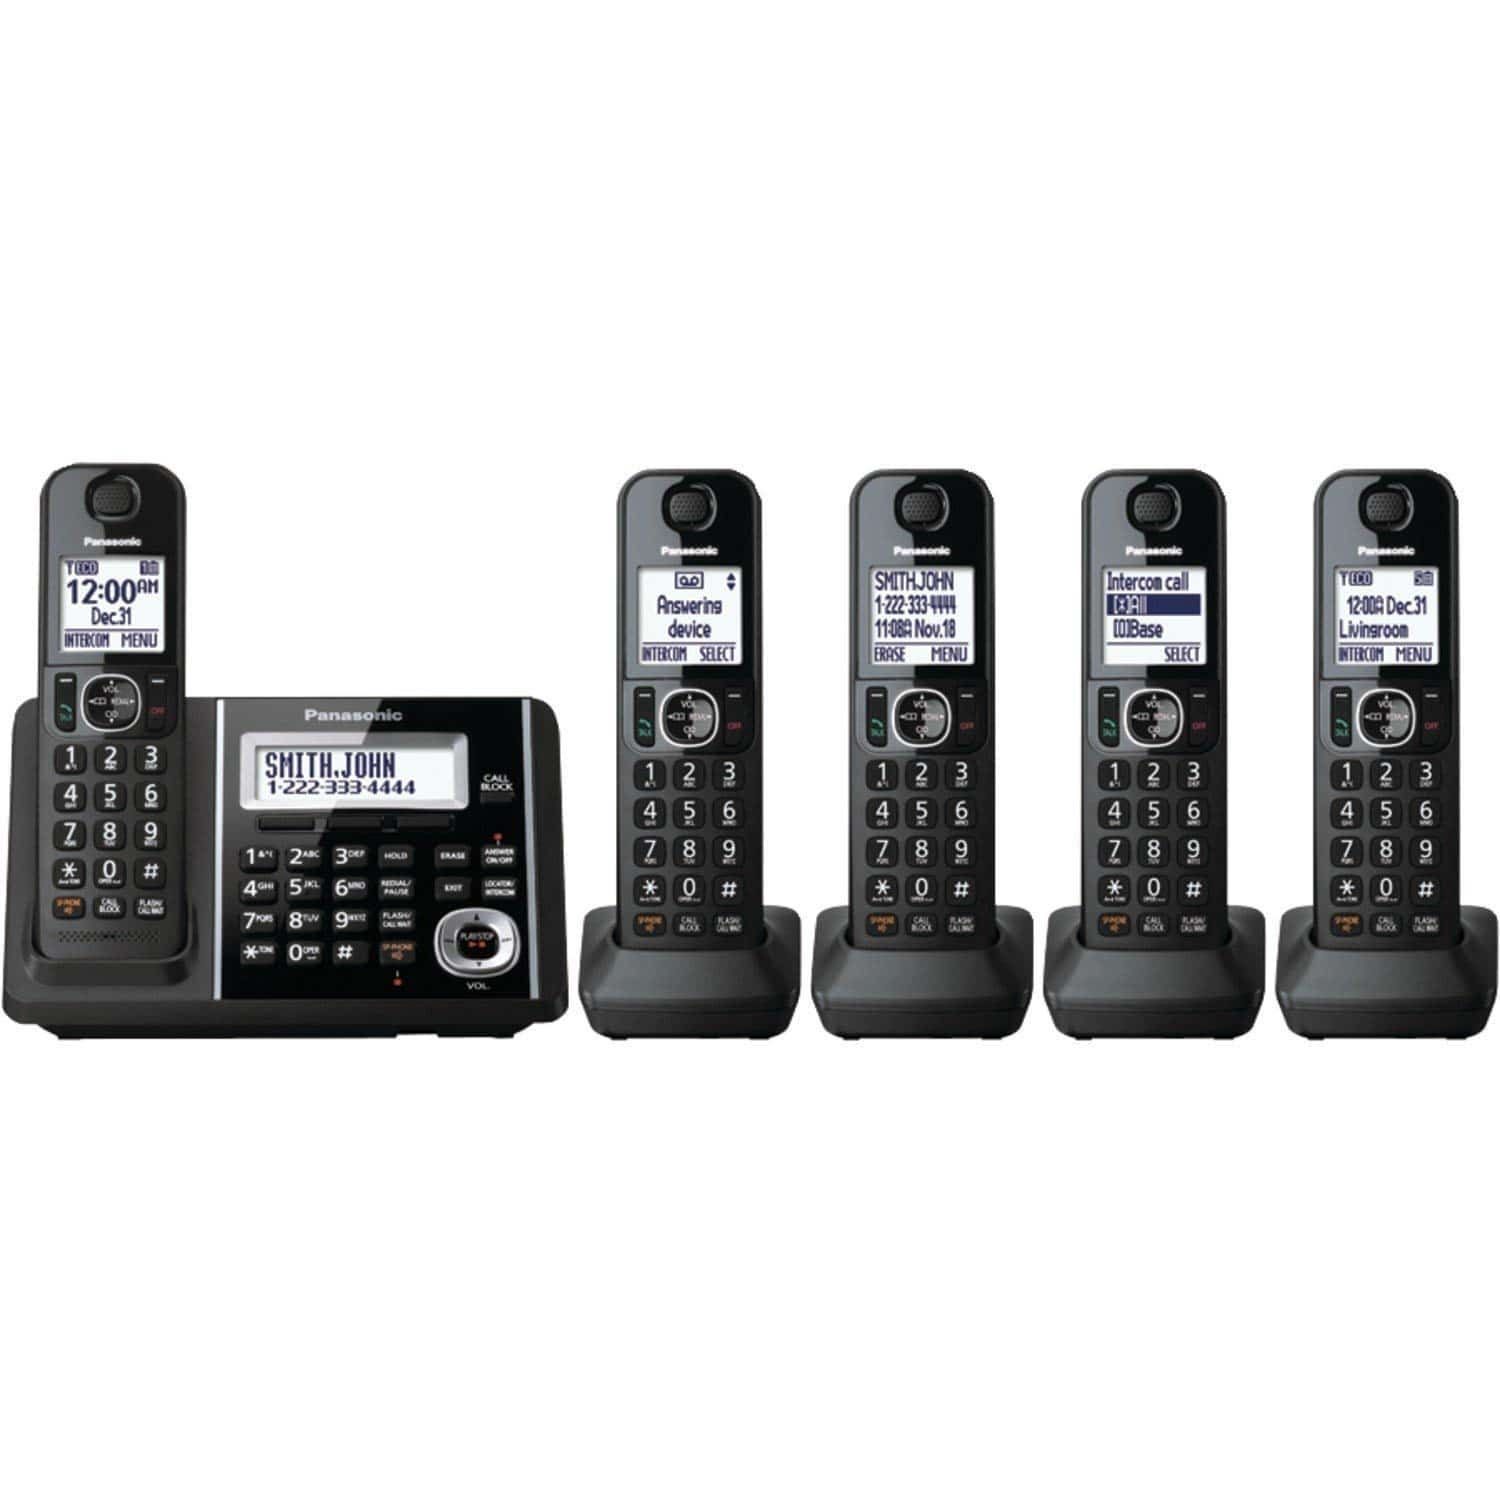 Top 10 Best Cordless Phones Review In 2020 A Step By